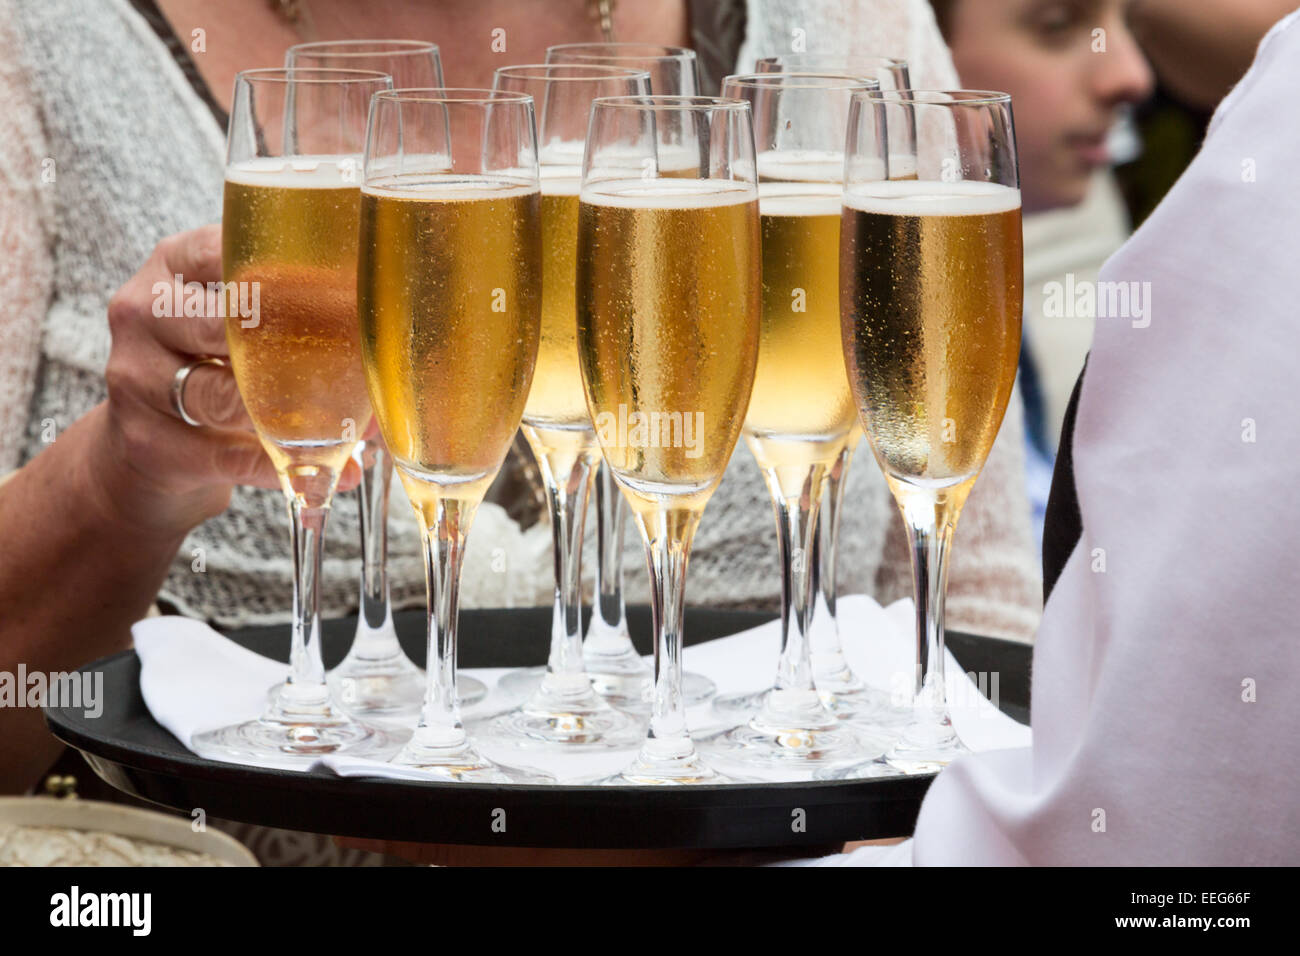 Glasses of champagne served on tray - Stock Image